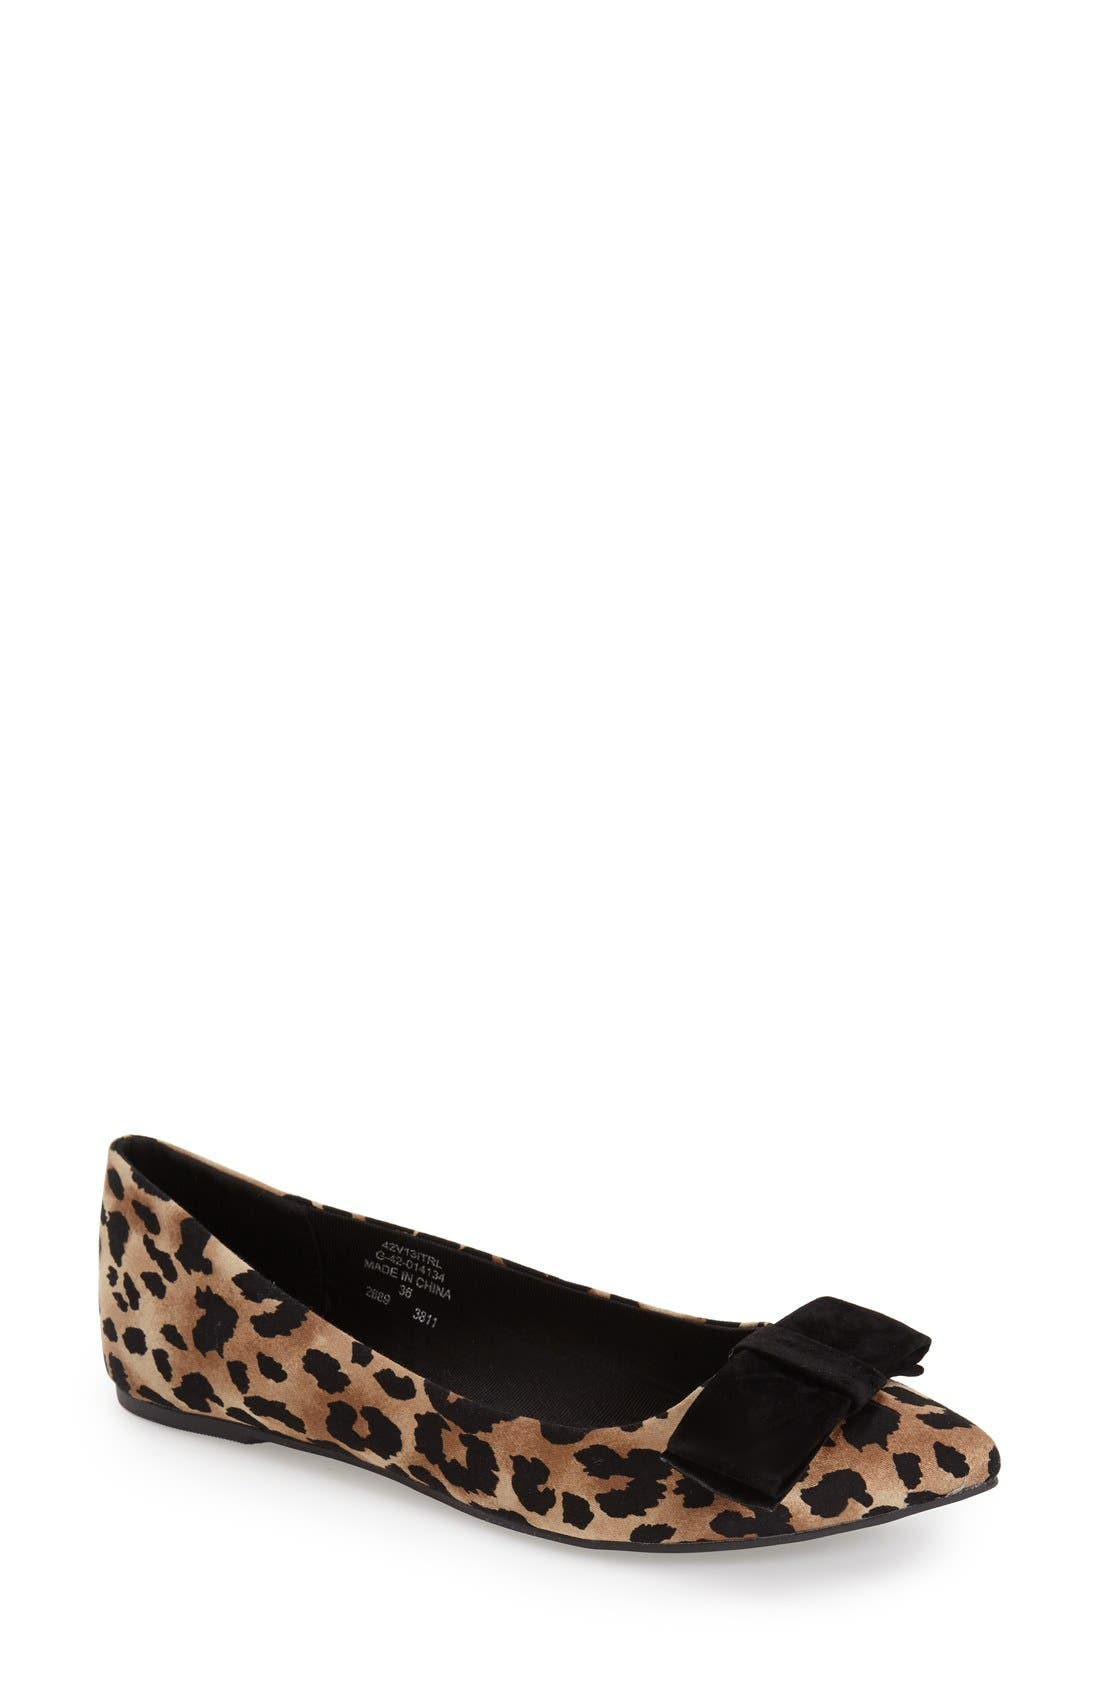 Alternate Image 1 Selected - Topshop 'Villa' Pointy Toe Flat (Women)